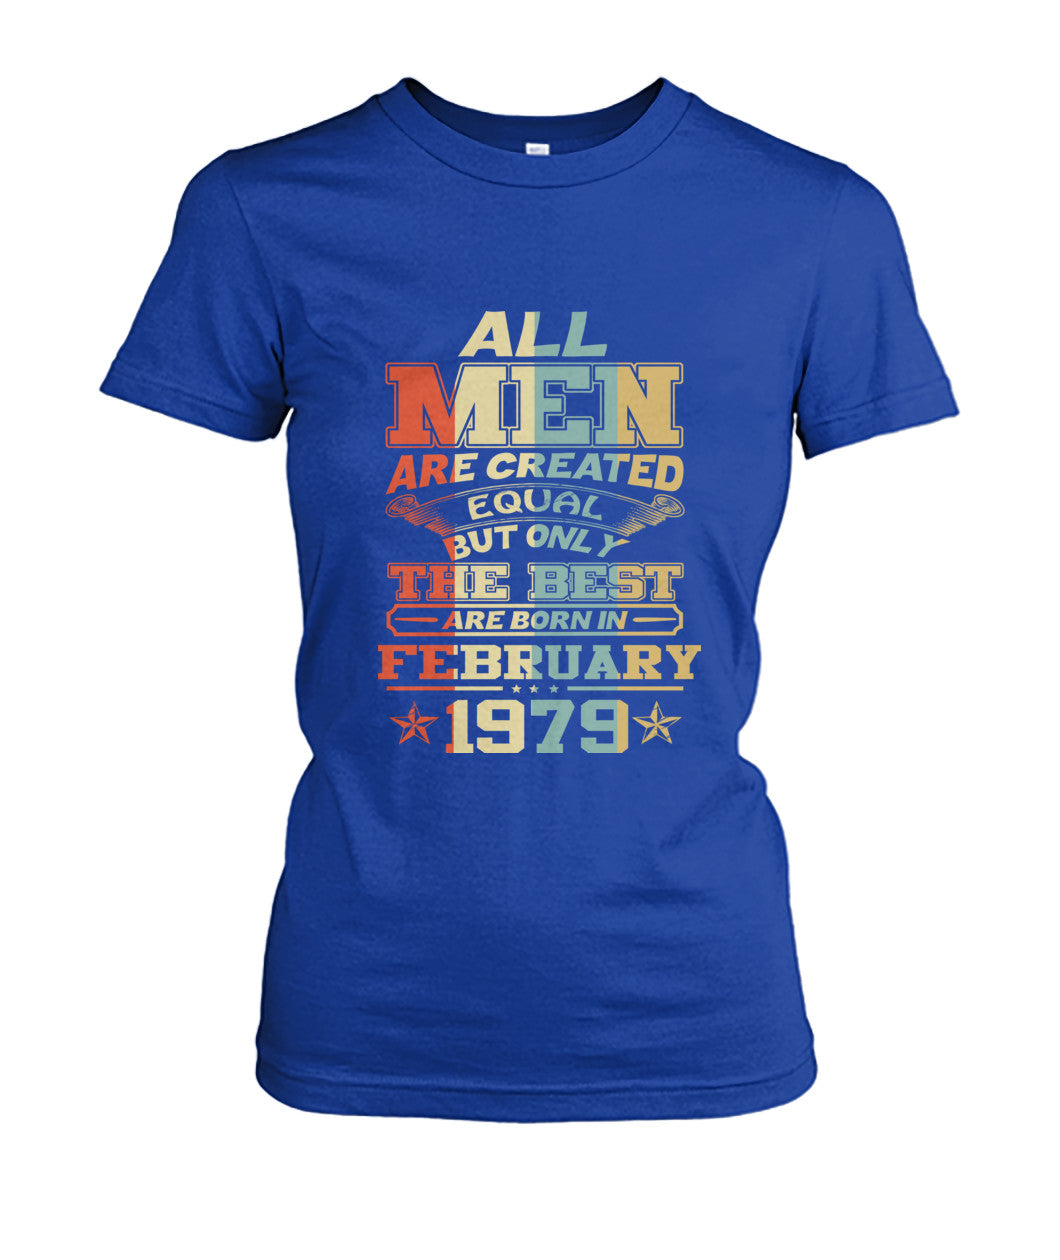 All Men Are Created Equal Only Best Are Born February 1979